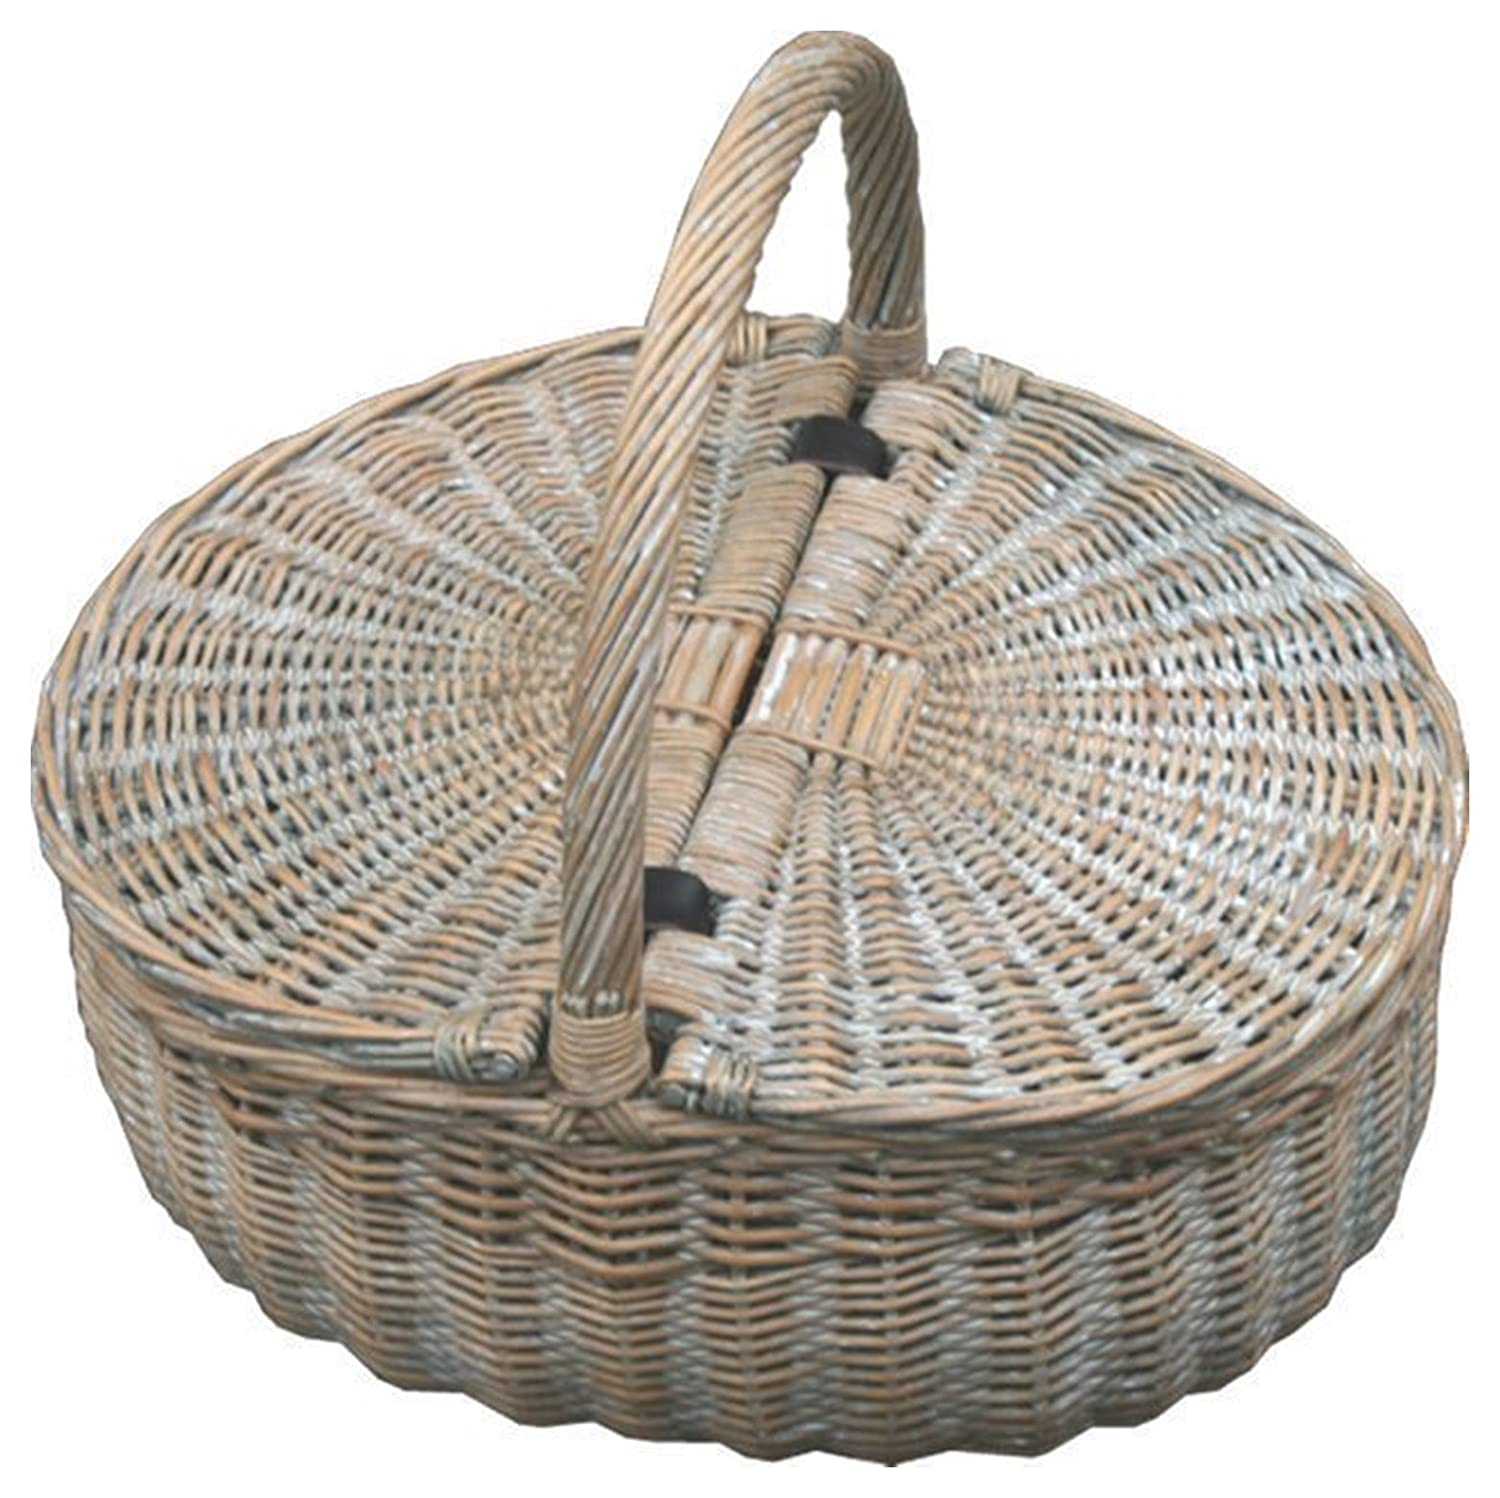 Red Hamper PR011/HOME Provence Double Lidded Empty Picnic Basket, Brown, 24 x 45 x 17 cm 503536719323